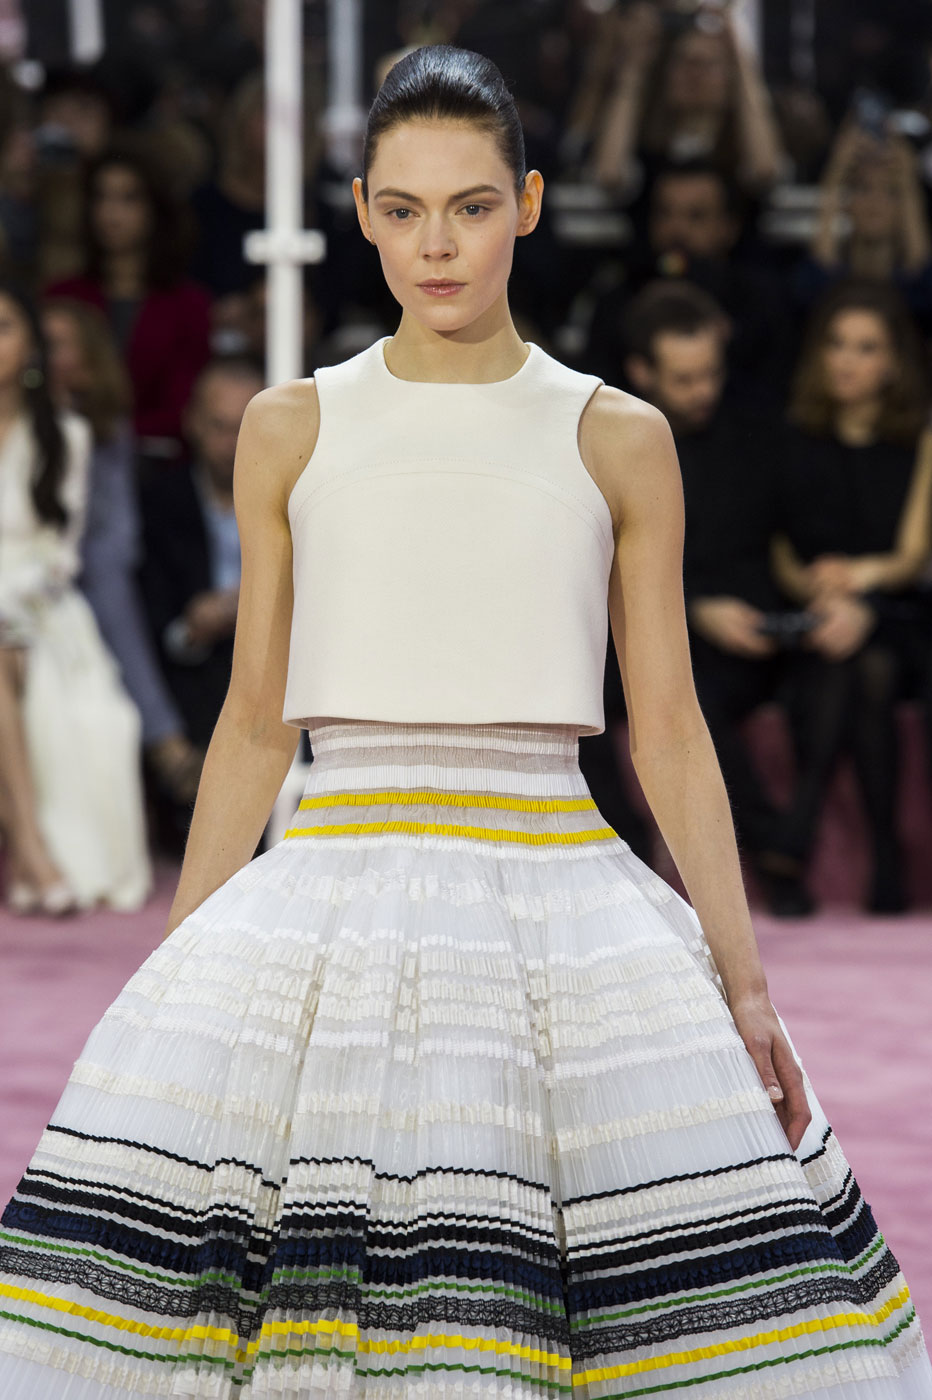 Christian-Dior-fashion-runway-show-haute-couture-paris-spring-summer-2015-the-impression-109